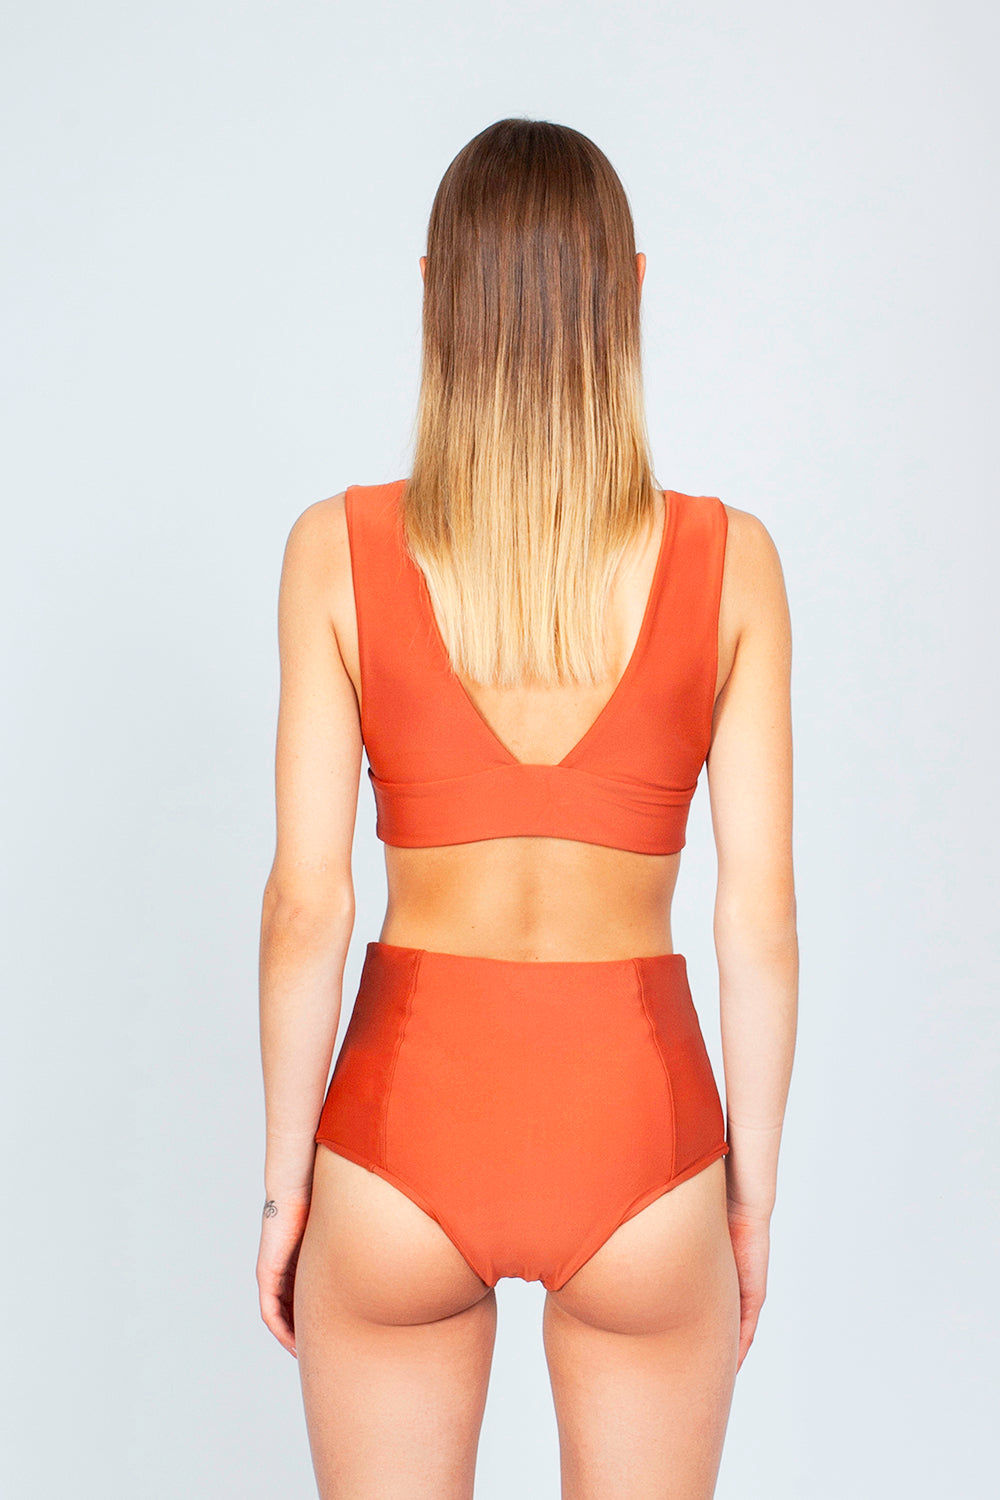 THE ONES WHO Dive Long Triangle Bikini Top - Copper Orange Bikini Top   Copper Orange  The Ones Who Dive Long Triangle Bikini Top - Copper Orange Long triangle top  V neckline  Thick bra band  V Back  Pull over  Made in LA  Fabric: 80% Nylon 20% Elastane Back View